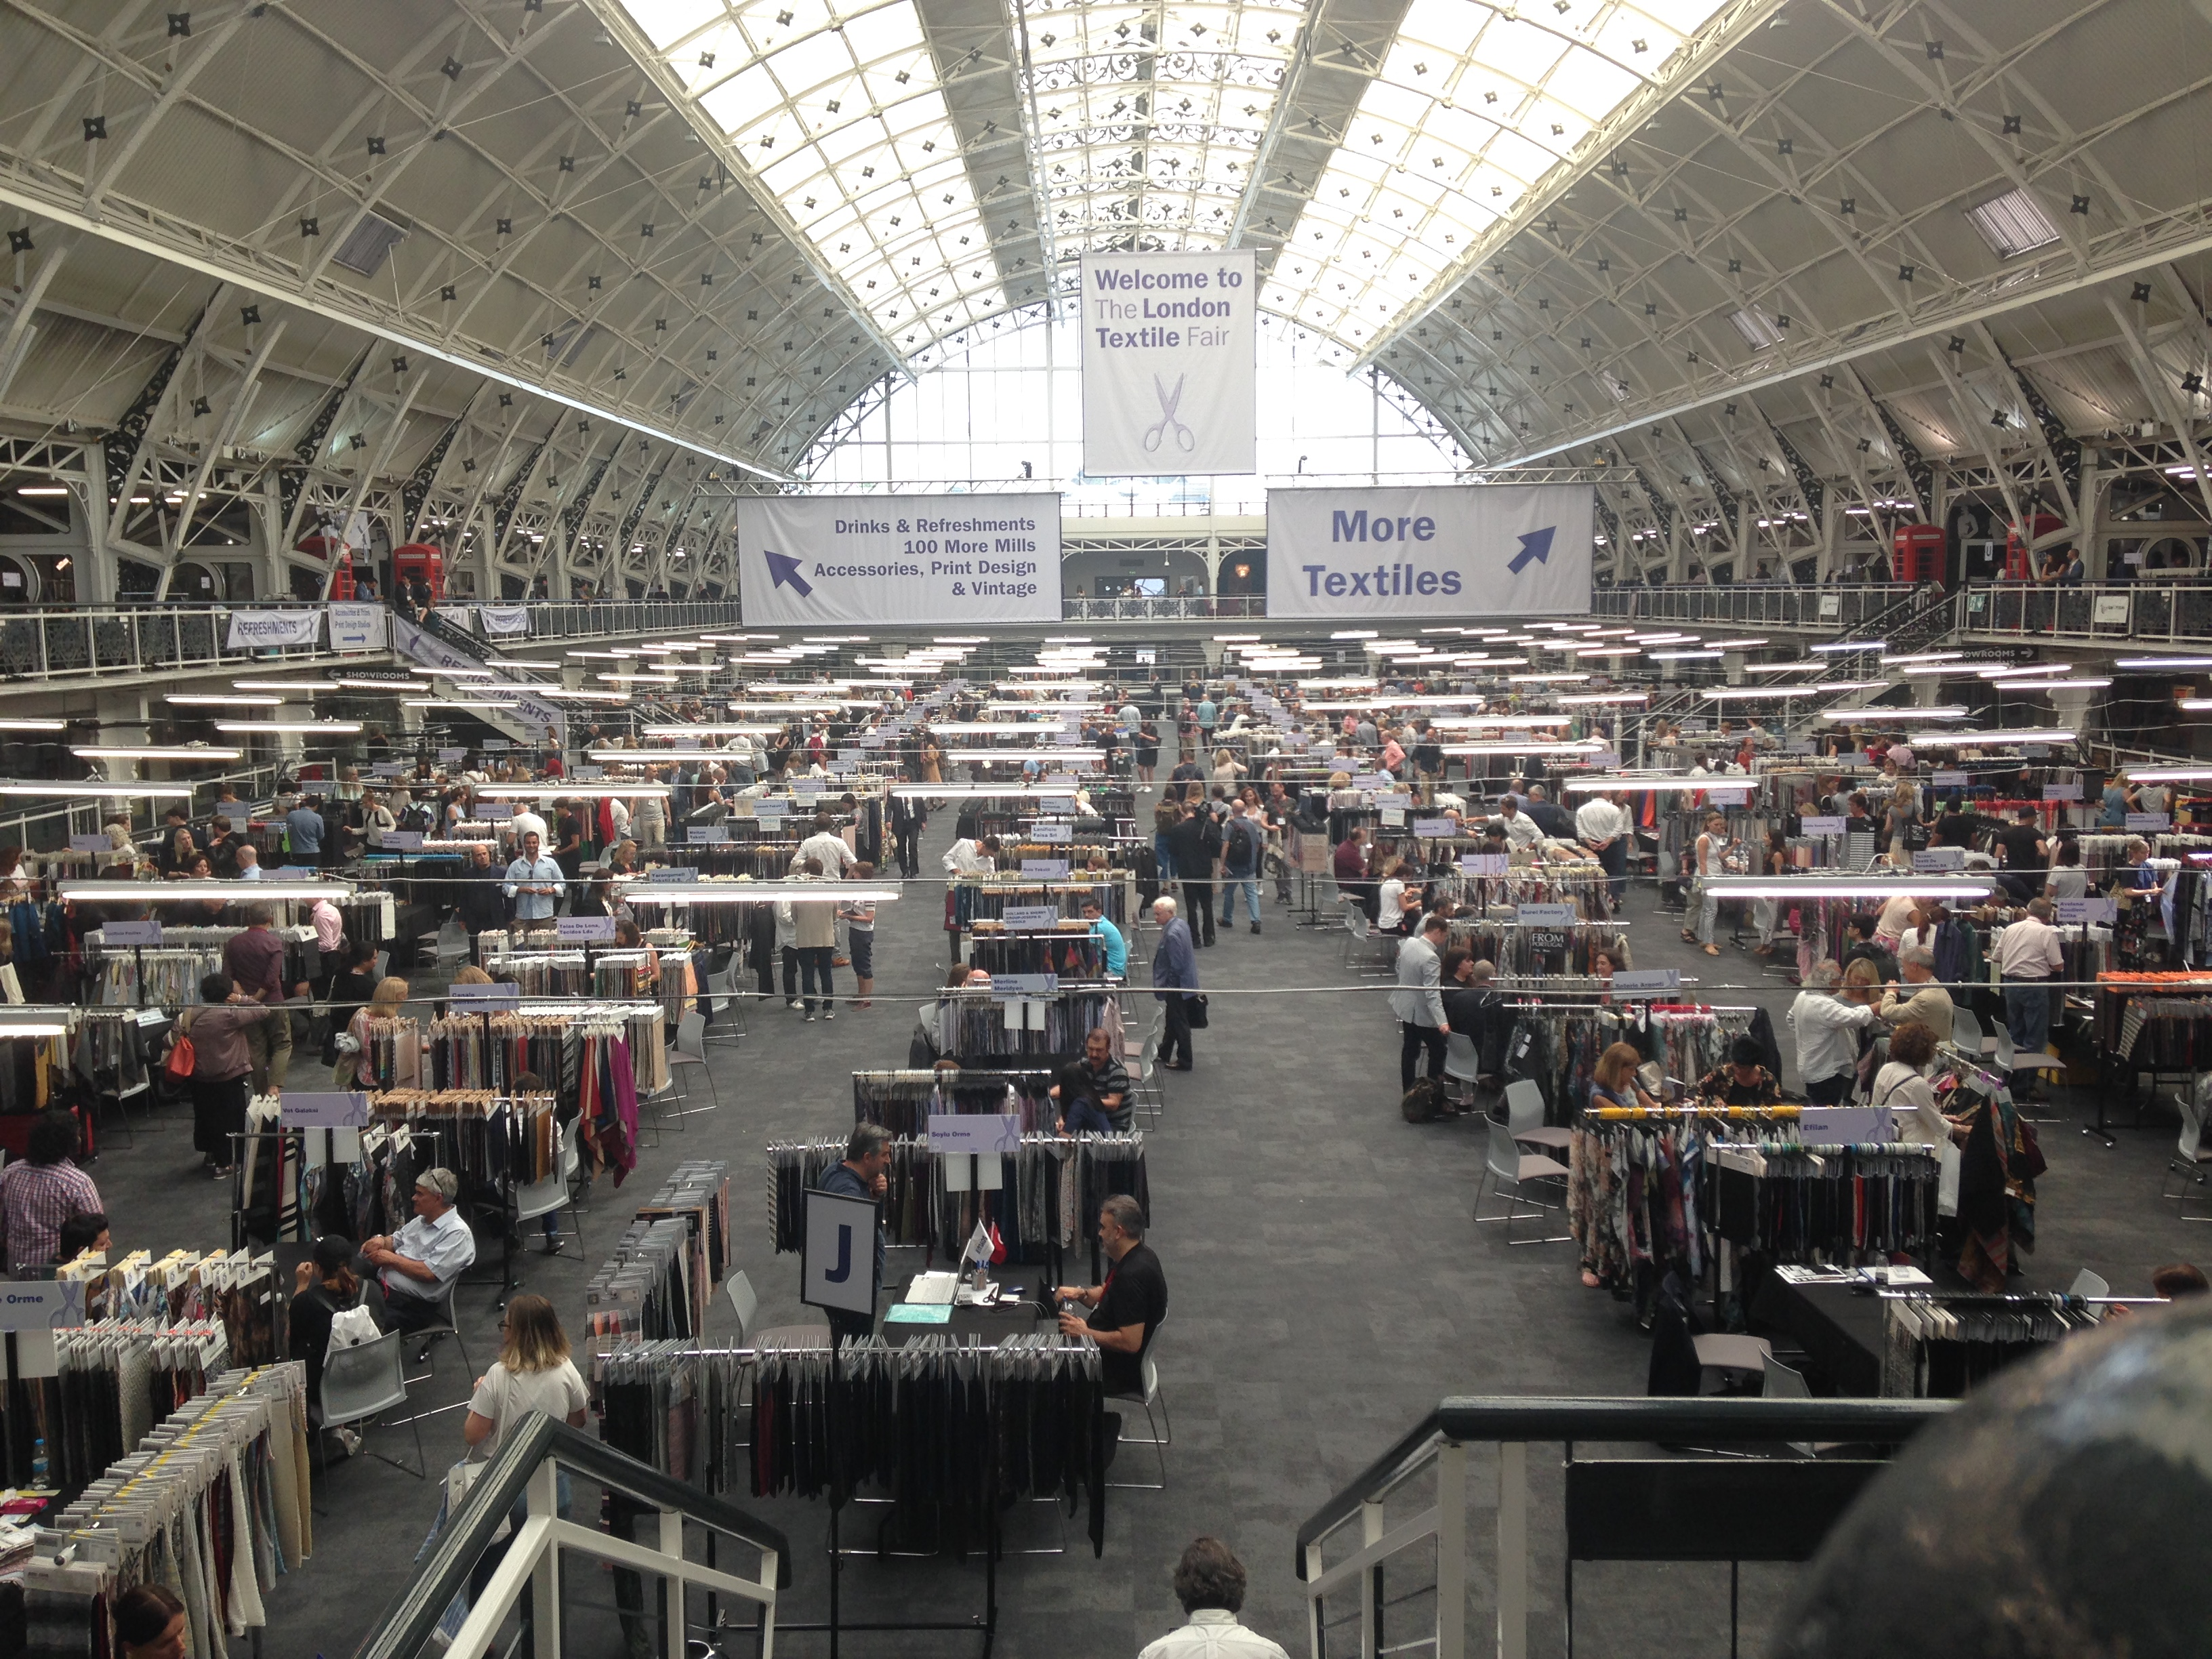 London Design Centre hosts London Textile Fair.